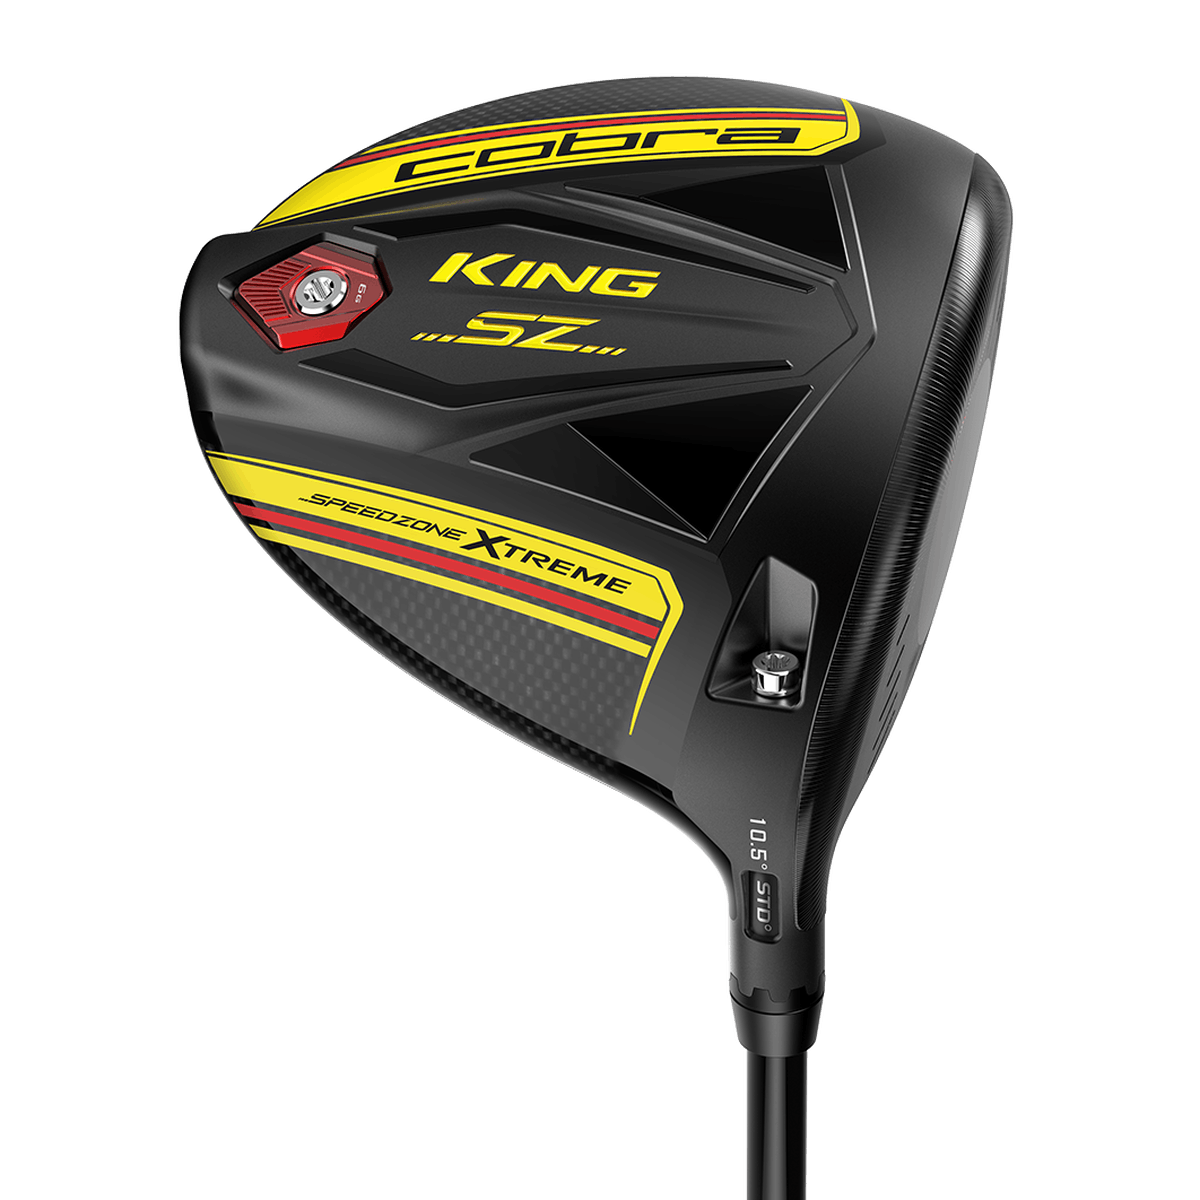 Cobra King SPEEDZONE XTREME Driver